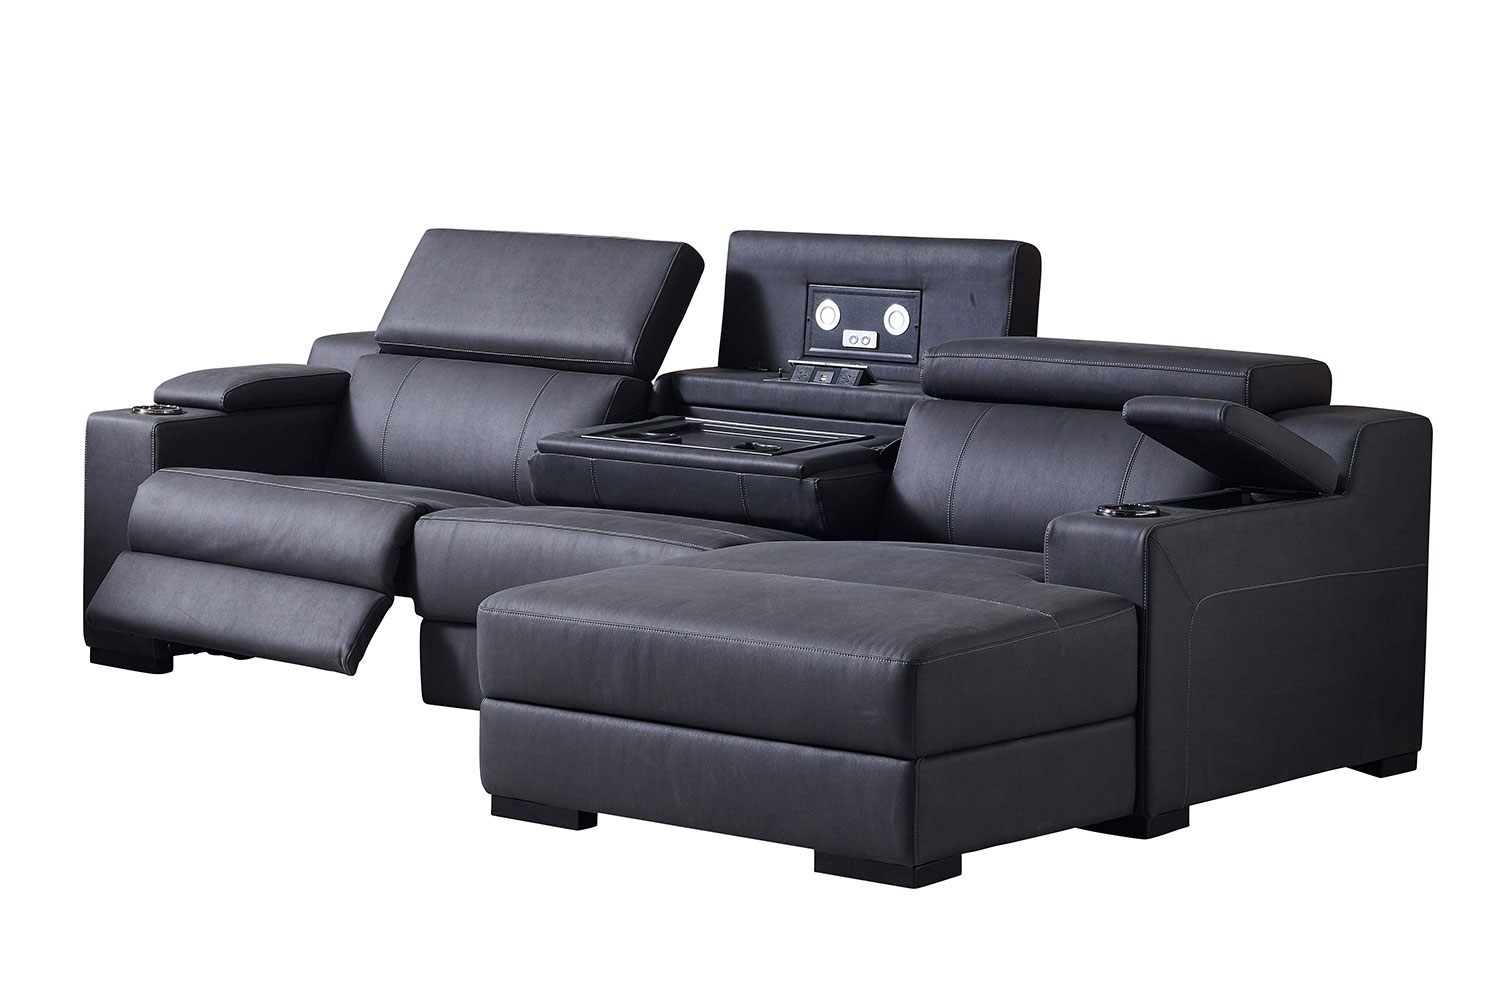 Sofa Set Meaning In Urdu Theatre Sofa Nz Baci Living Room